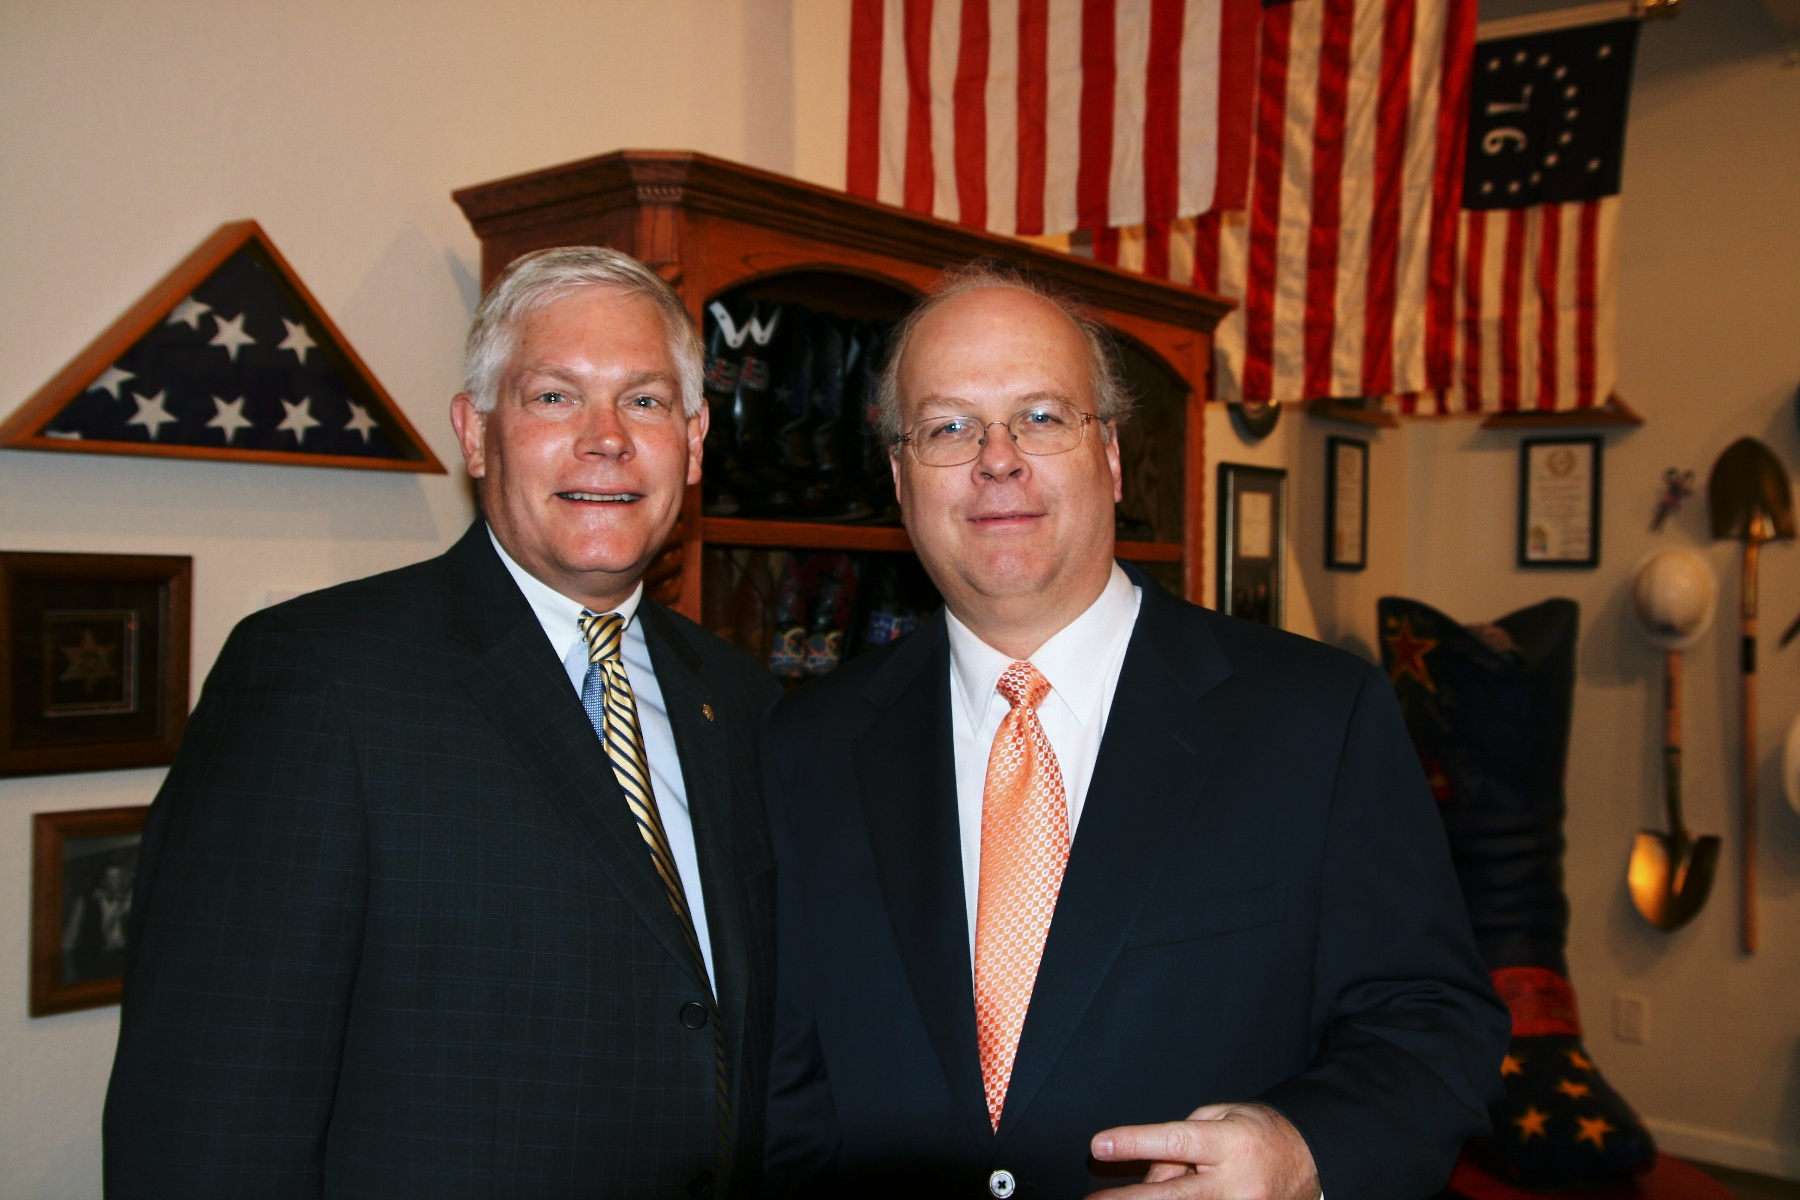 Congressman Pete Sessions and Karl Rove in 2010.